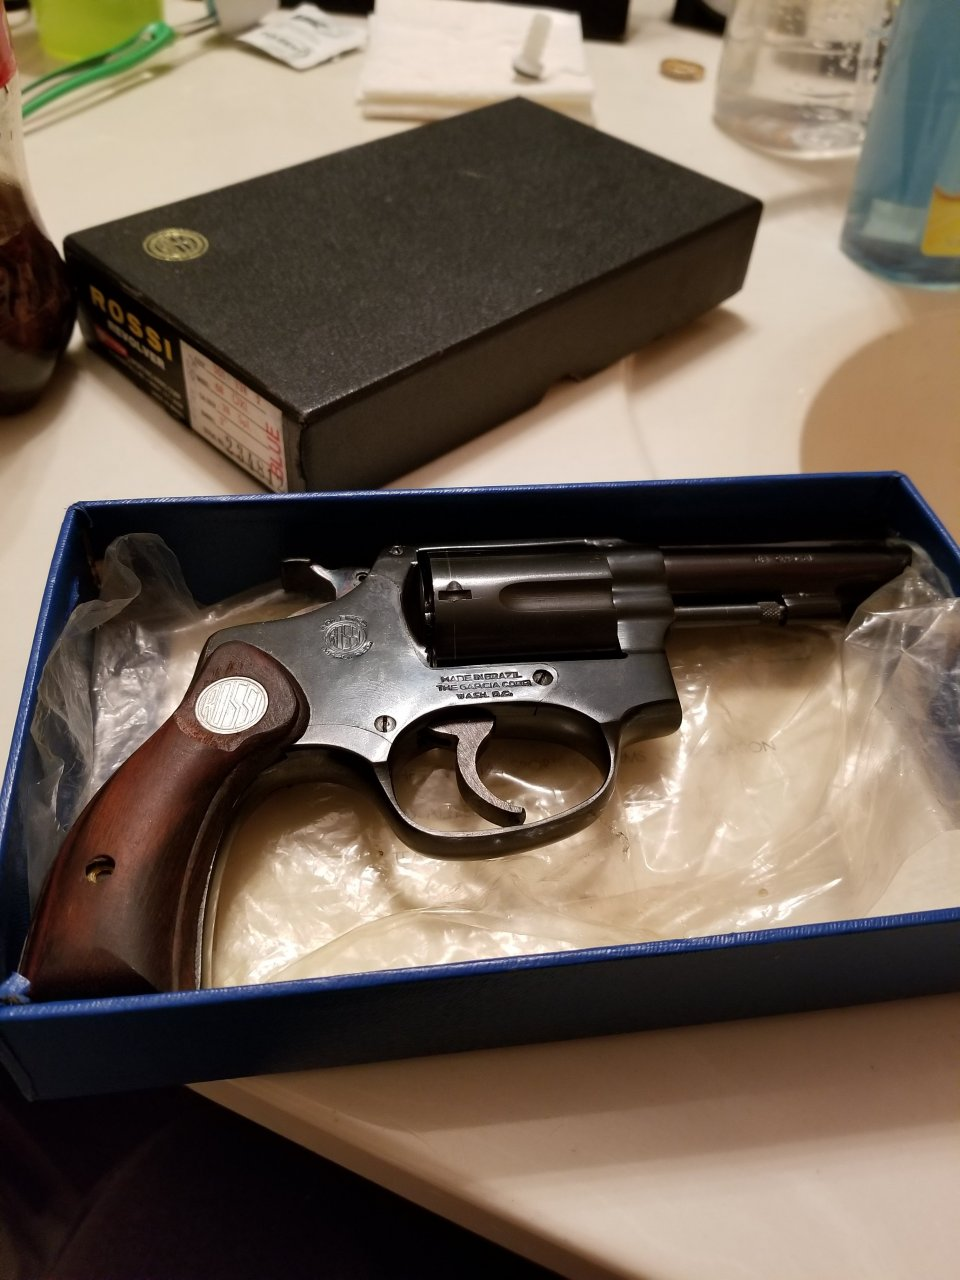 Rossi Revolver, Model 68 OXI  38 Special, 3inch Bbl, Wood